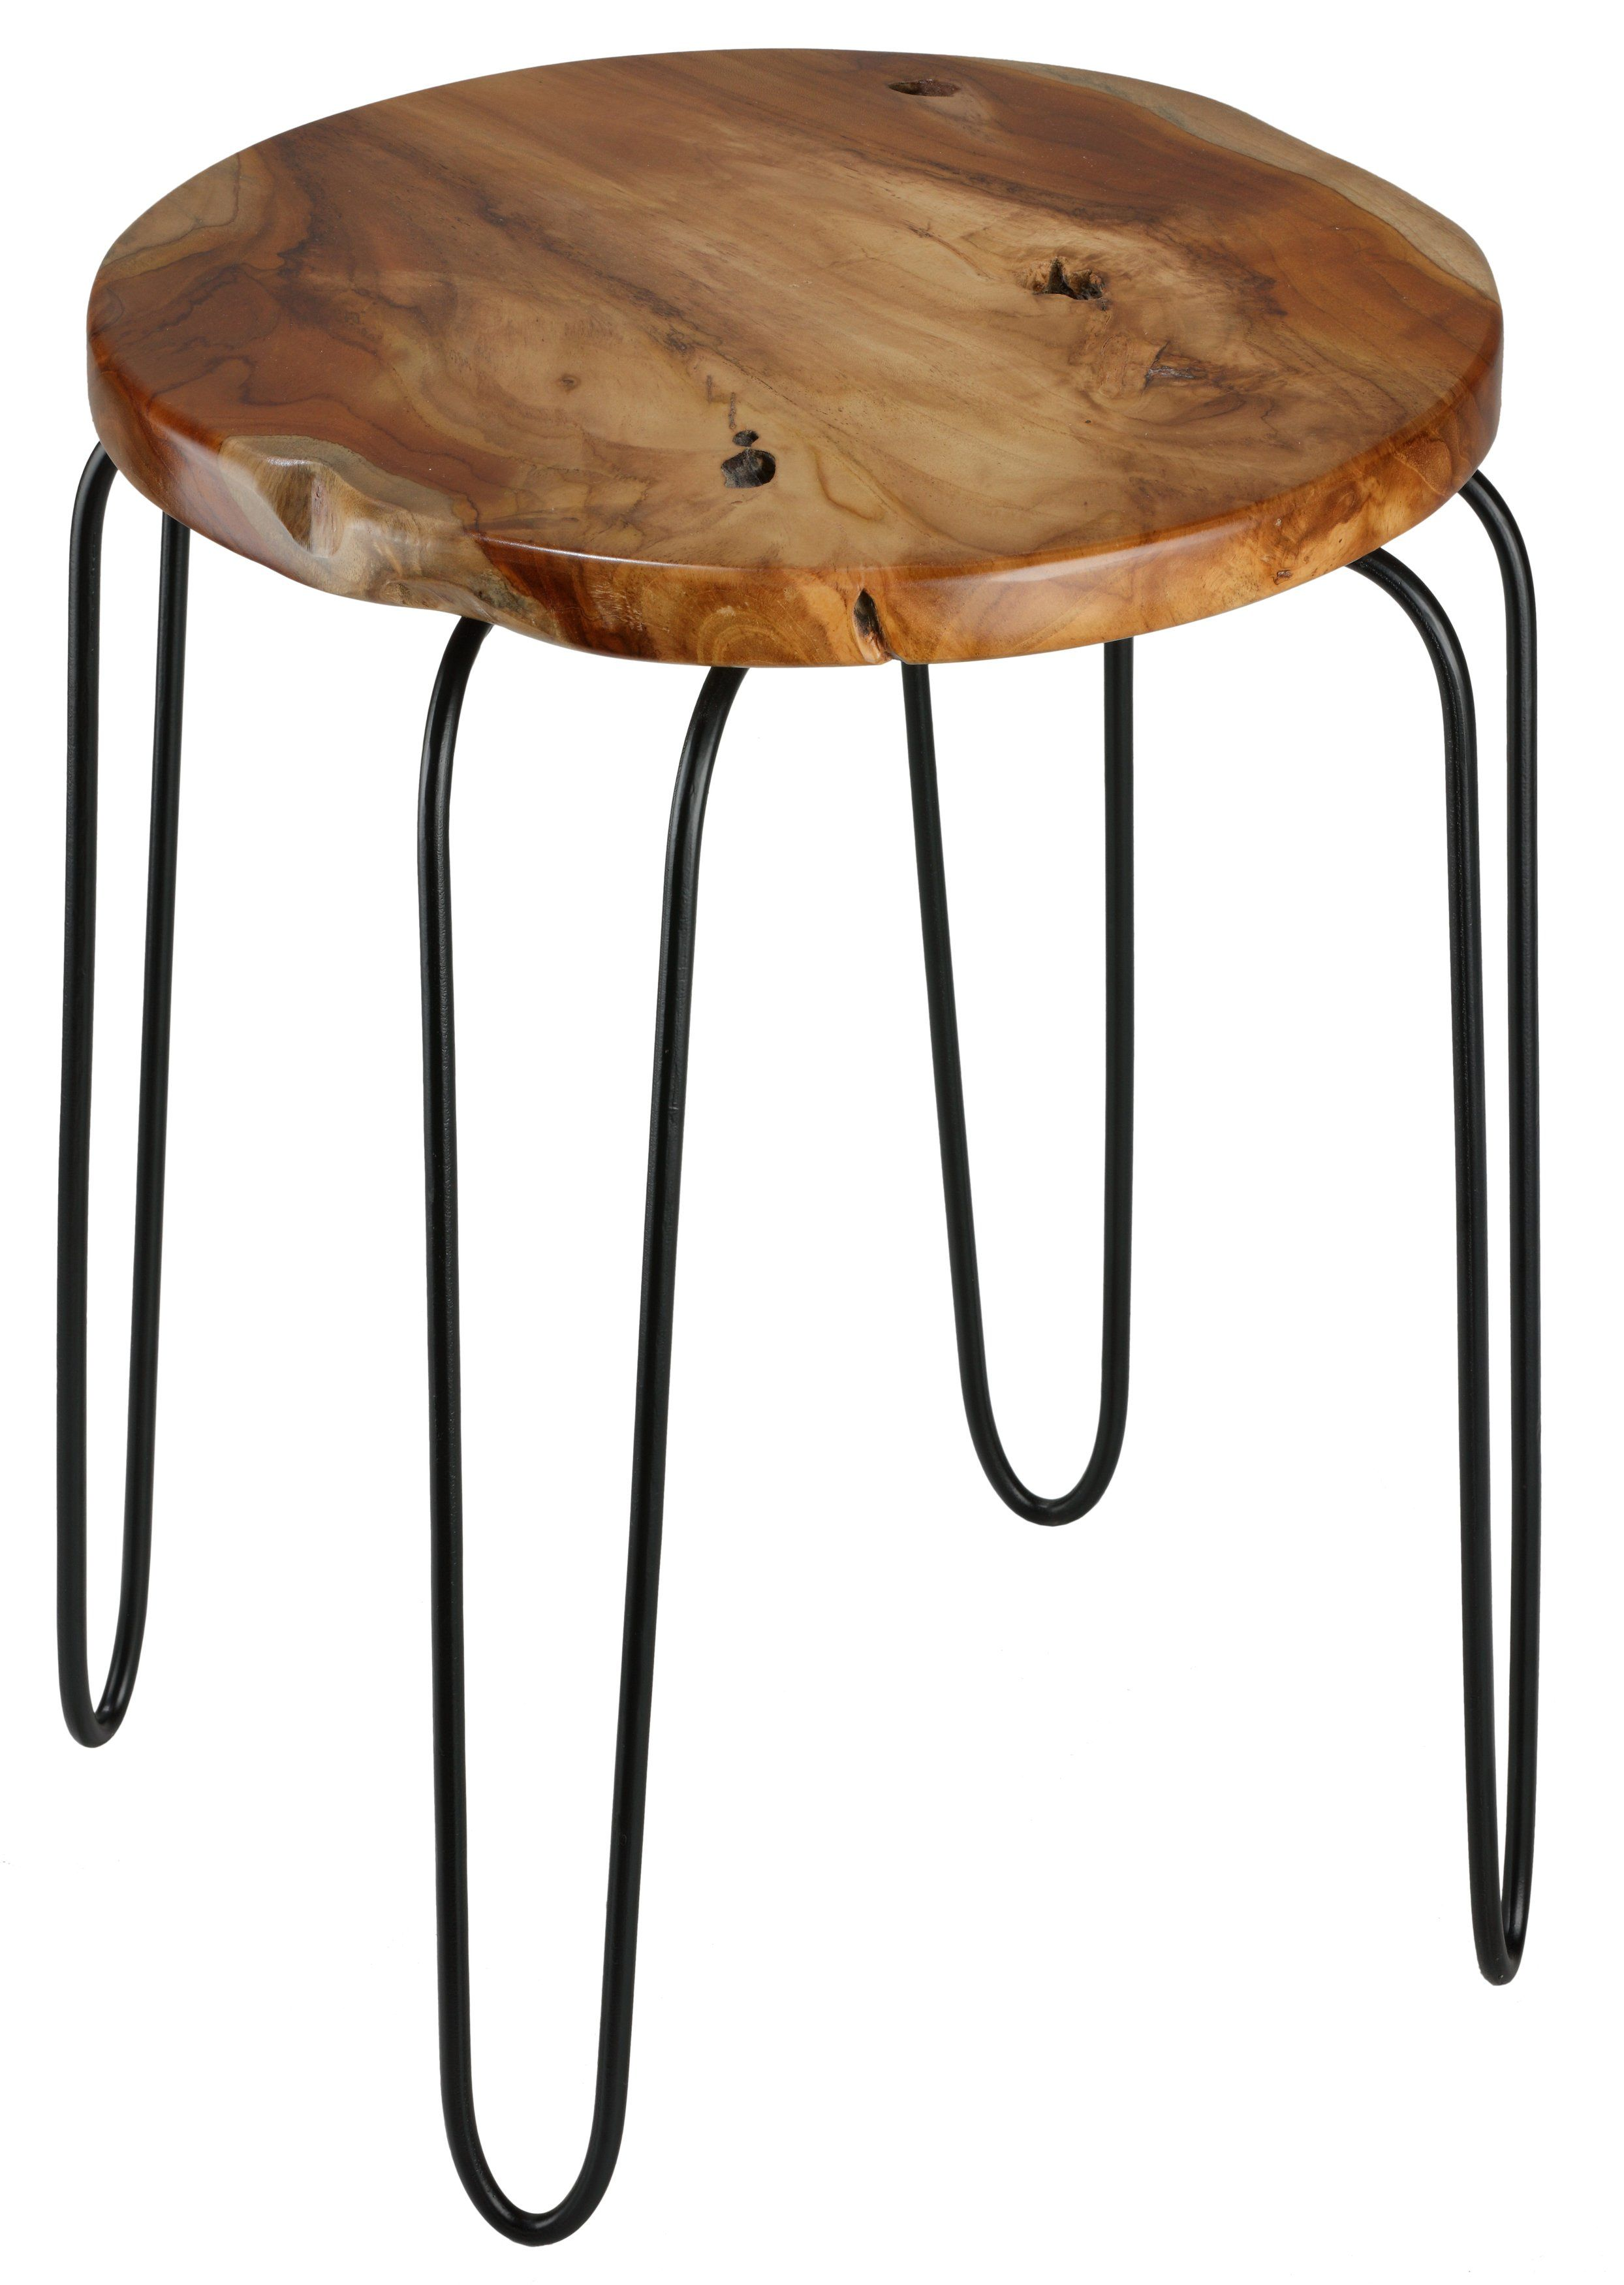 bare decor lacie accent end table with round solid teak root top coffee wheels dale tiffany desk lamp contemporary furniture edmonton small acrylic console boys bedroom usb